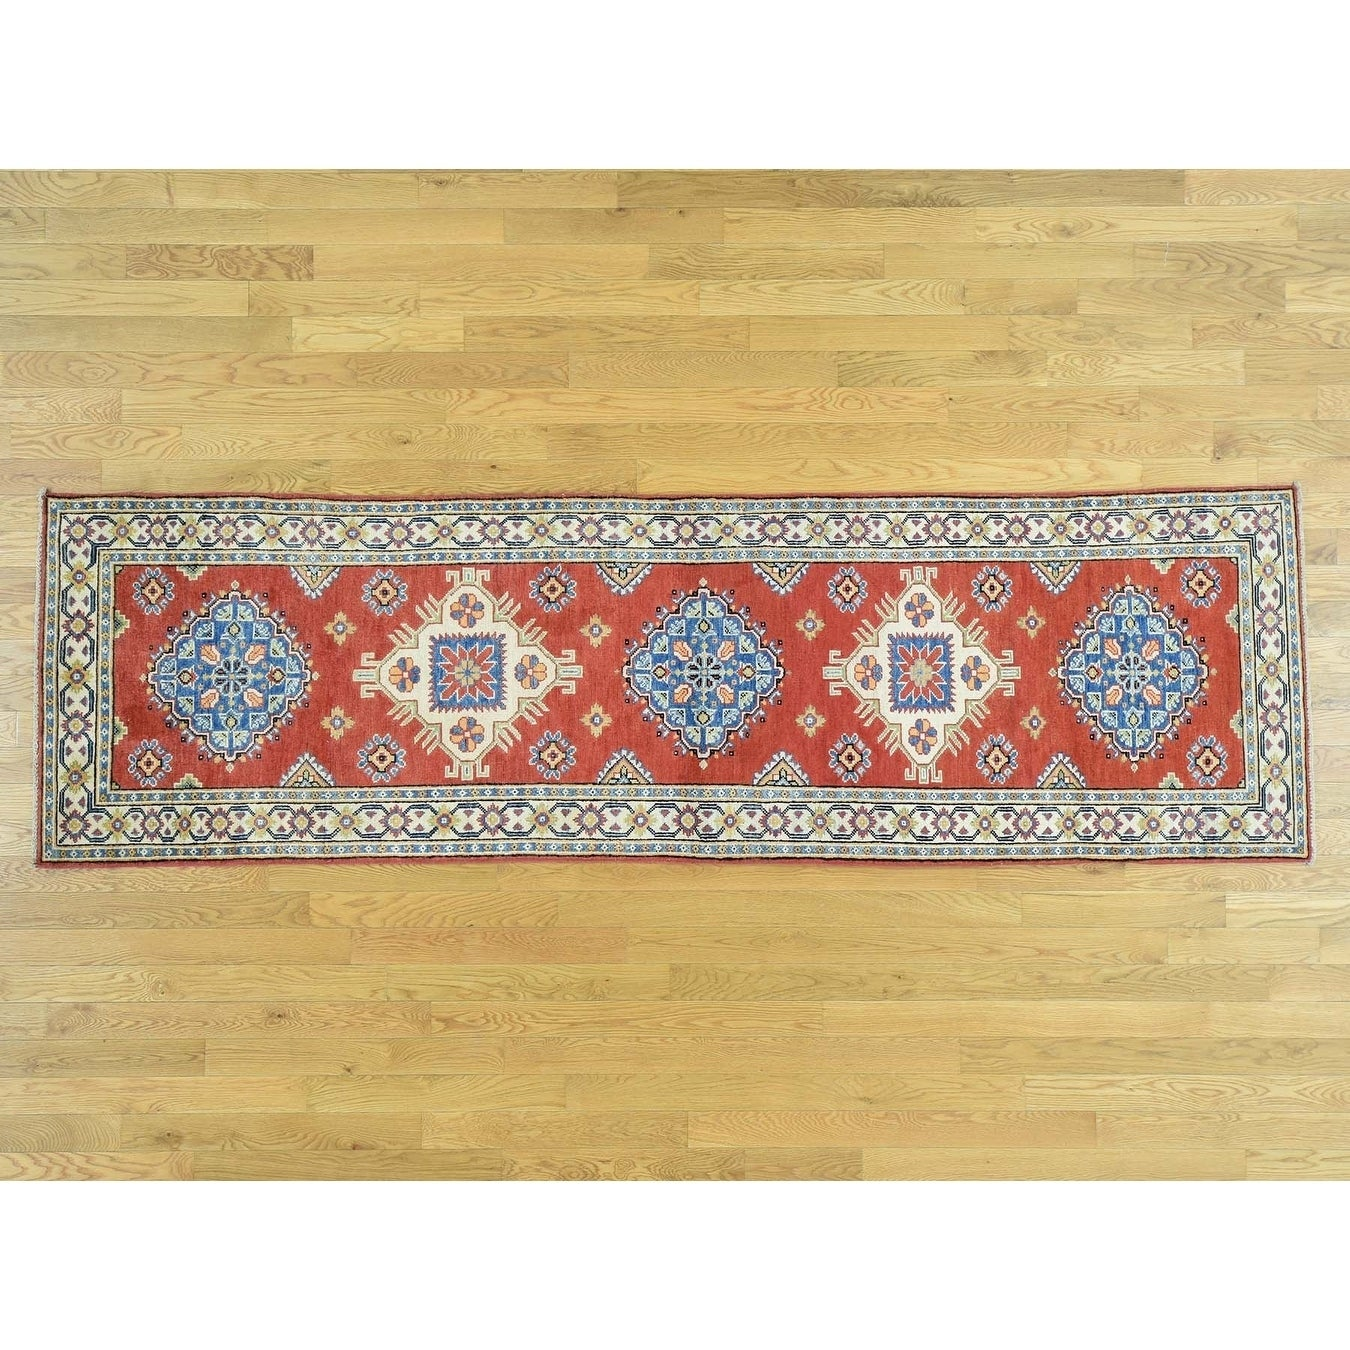 Hand Knotted Red Kazak with Wool Oriental Rug - 29 x 96